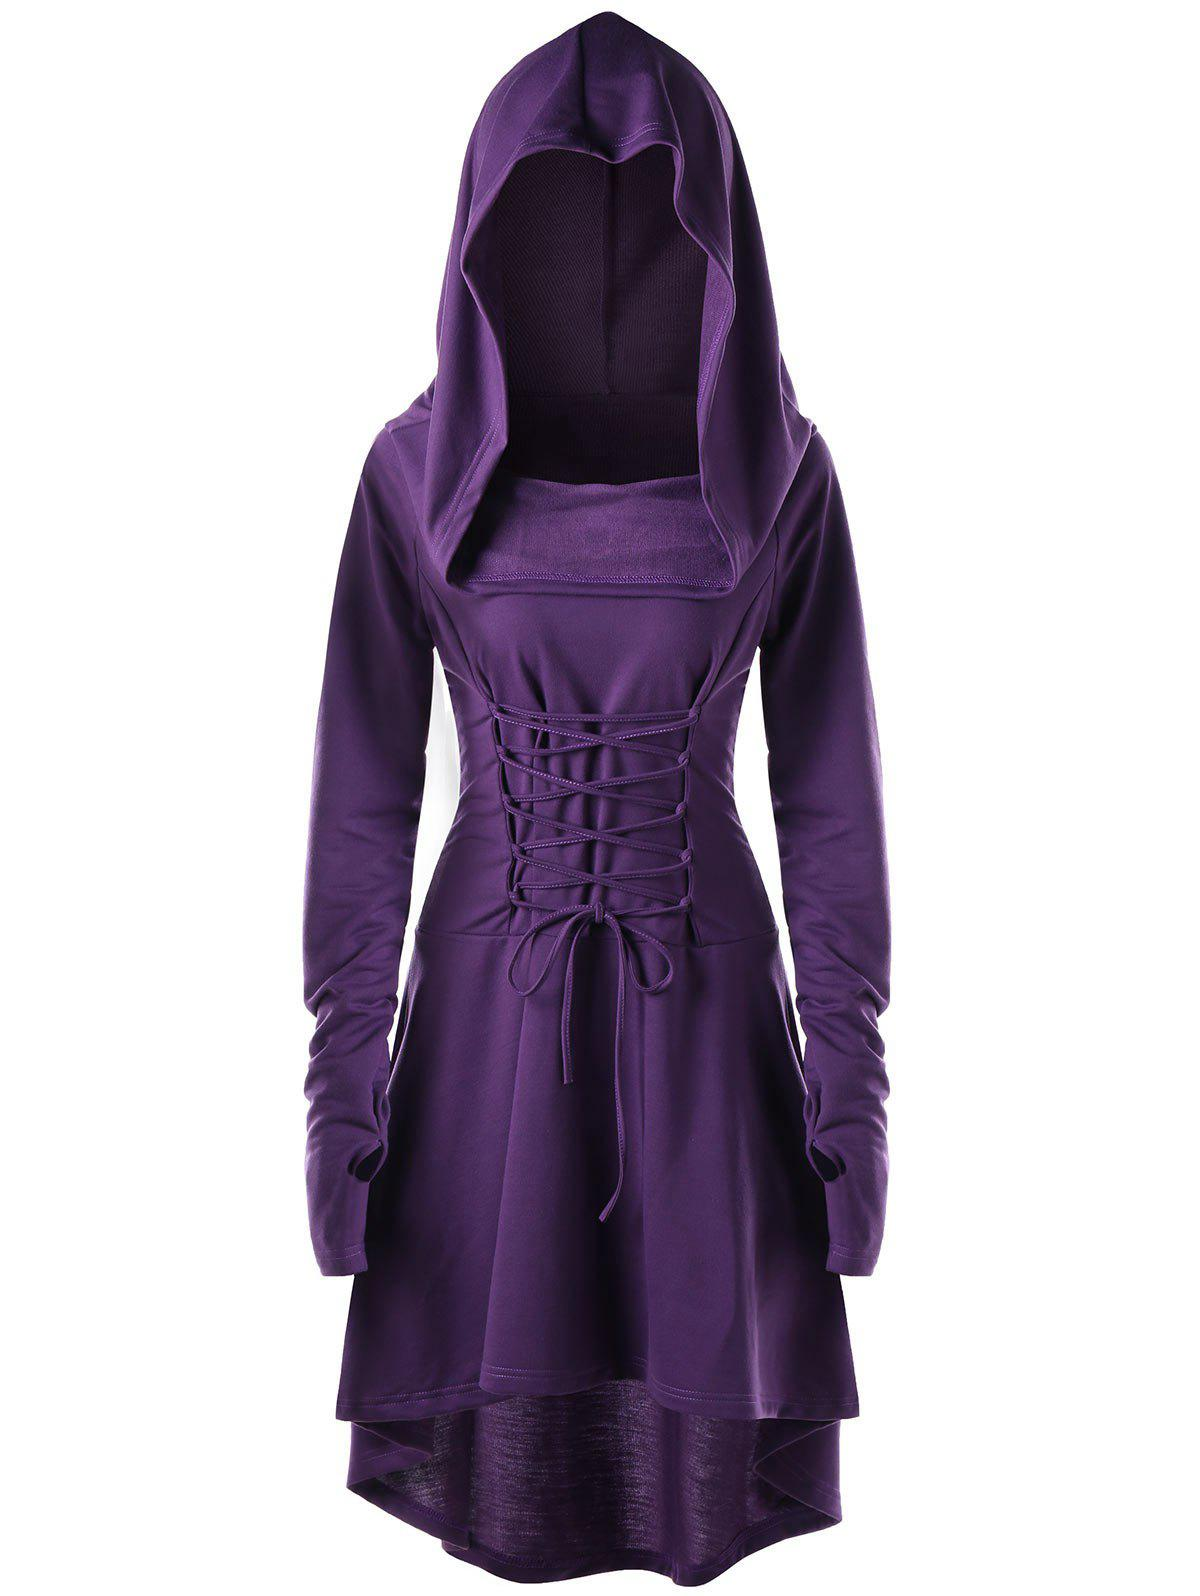 Hooded Lace Up High Low DressWOMEN<br><br>Size: 2XL; Color: PURPLE; Style: Novelty; Material: Polyester,Spandex; Silhouette: Asymmetrical; Dresses Length: Mid-Calf; Neckline: Hooded; Sleeve Length: Long Sleeves; Embellishment: Criss-Cross; Pattern Type: Solid; With Belt: No; Season: Fall,Spring; Weight: 0.5500kg; Package Contents: 1 x Dress;